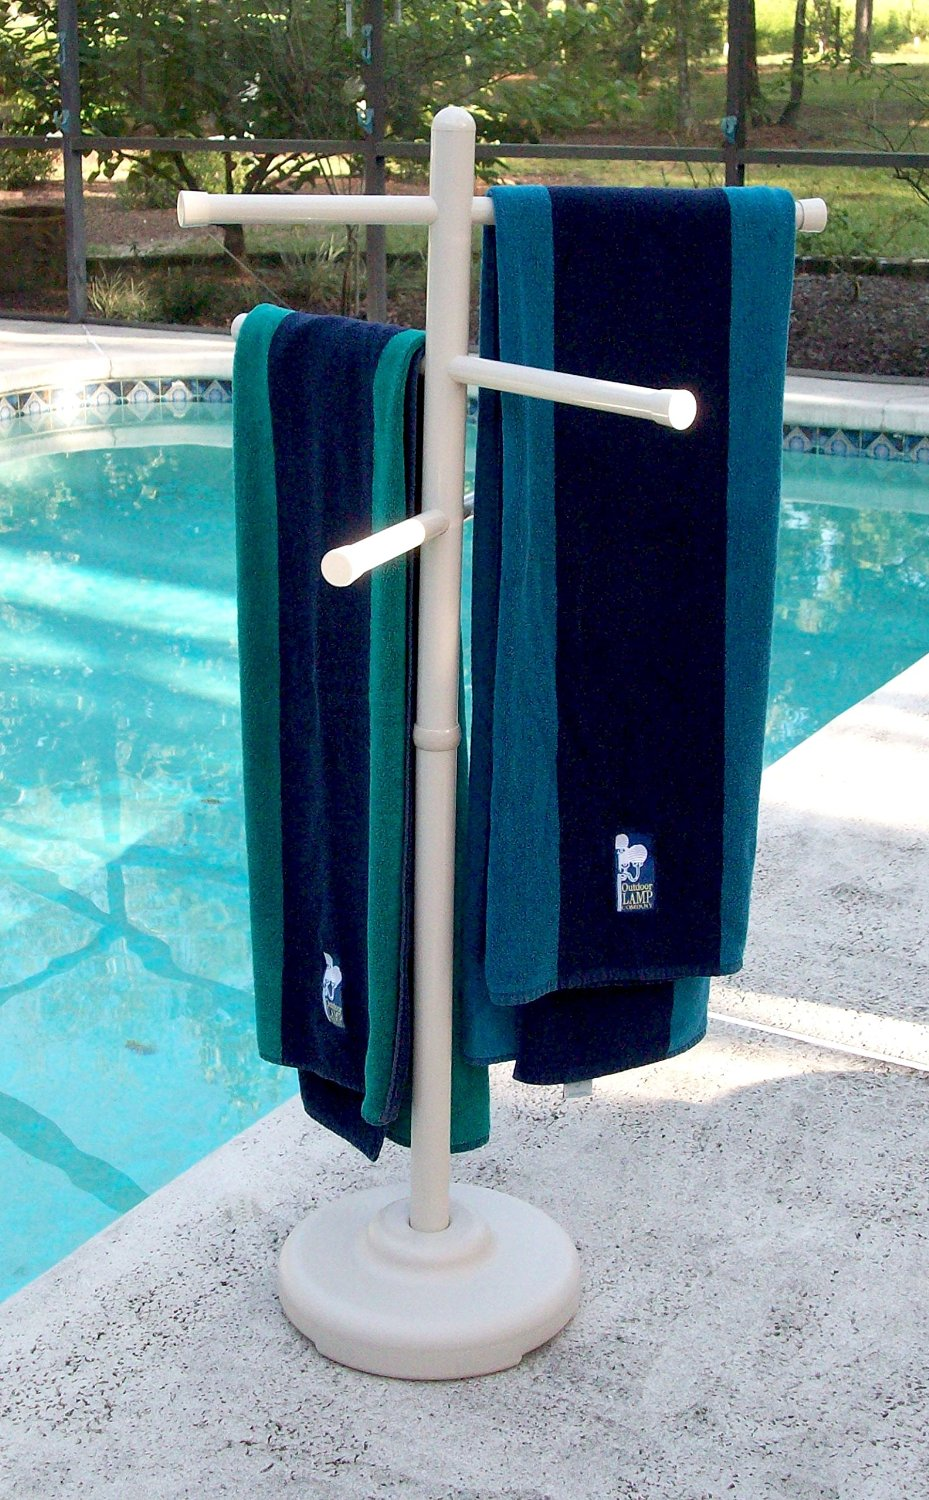 Outdoor Spa and Pool Towel Rack - White